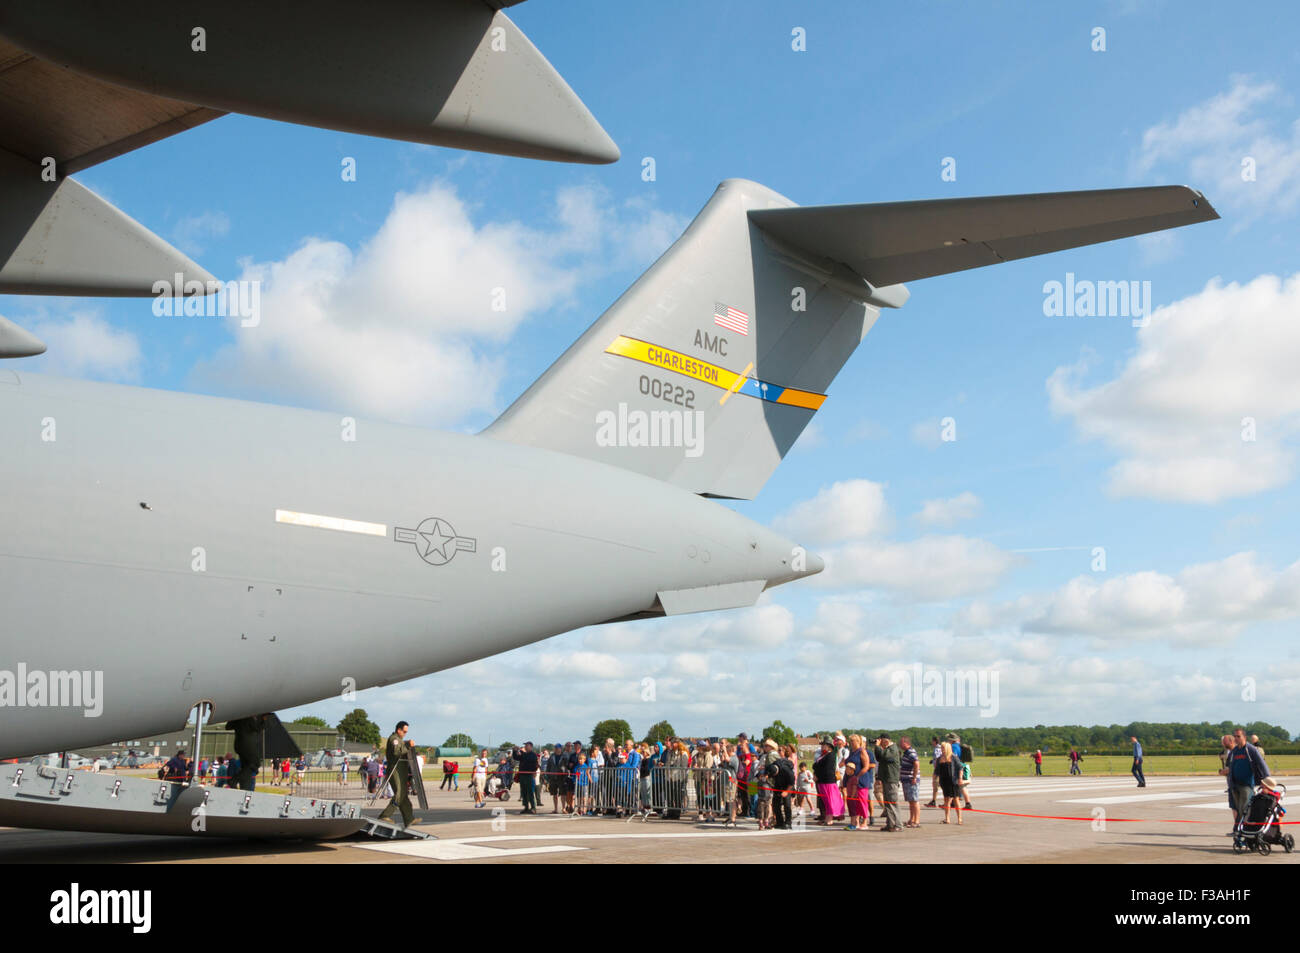 The tail of a McDonnell Douglas/Boeing C-17 Globemaster III towers above spectators at RNAS Yeovilton Air Day 2015 - Stock Image